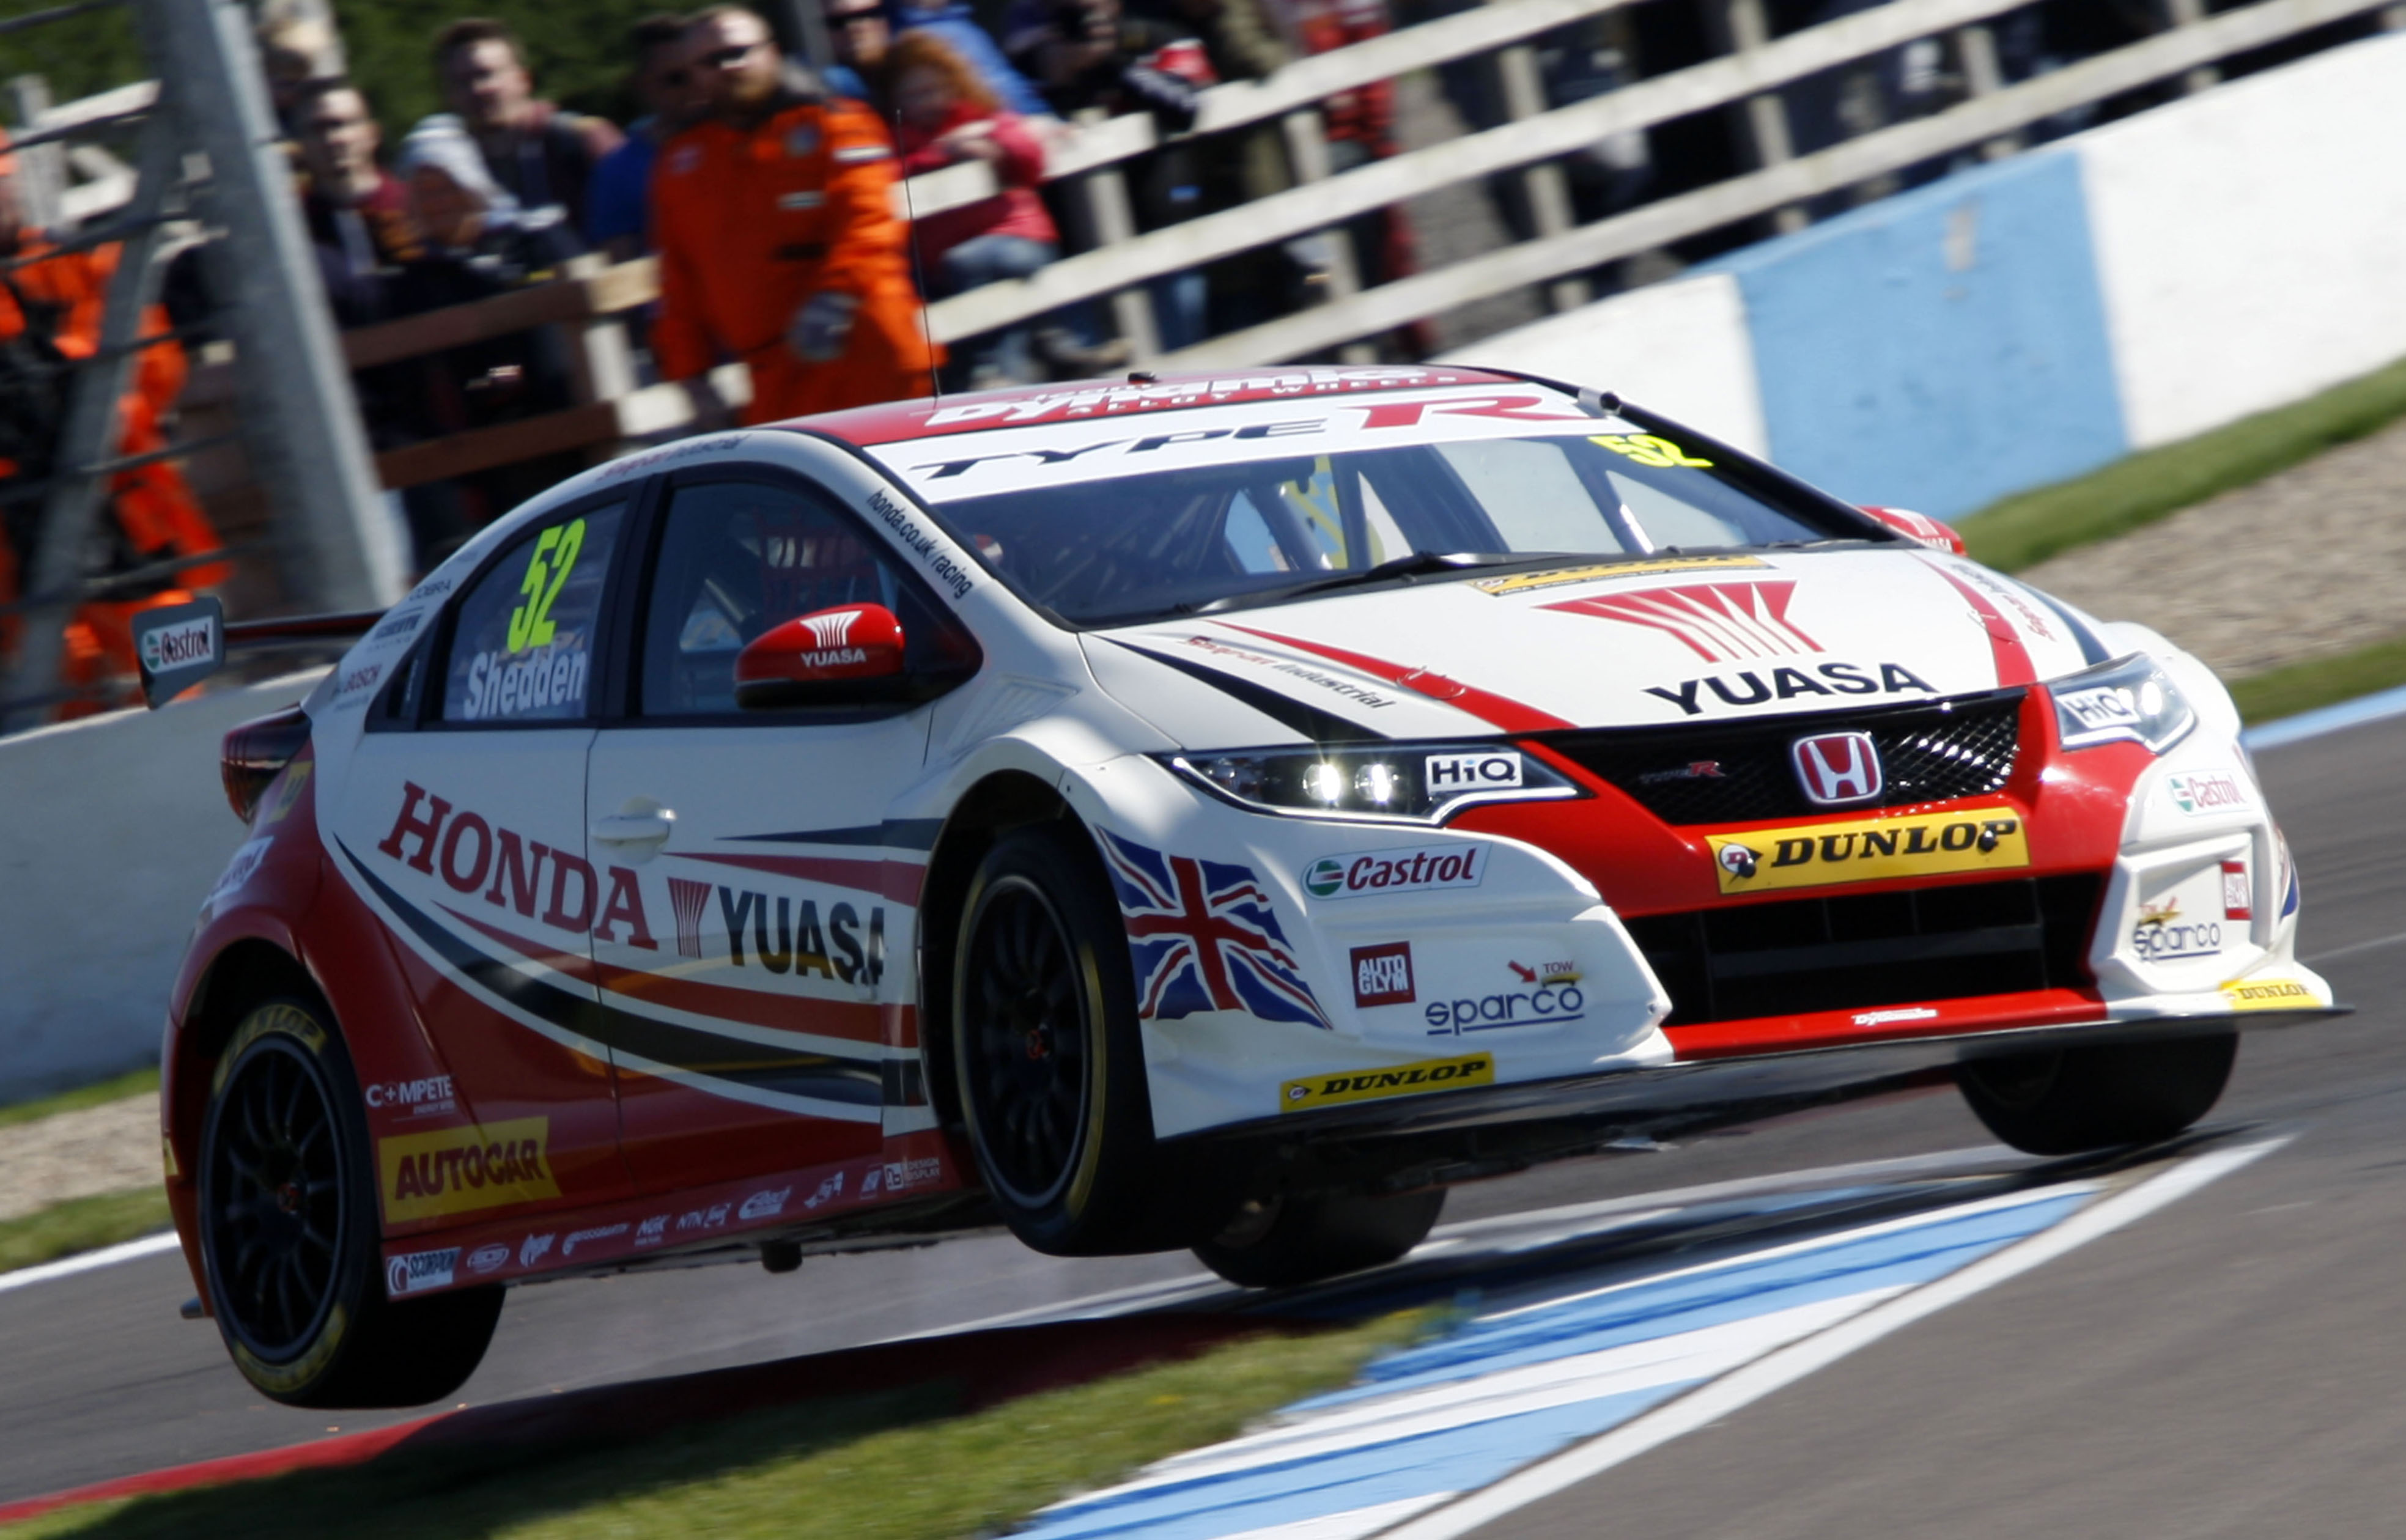 The honda team are expected to be on flying form at thruxton image credit